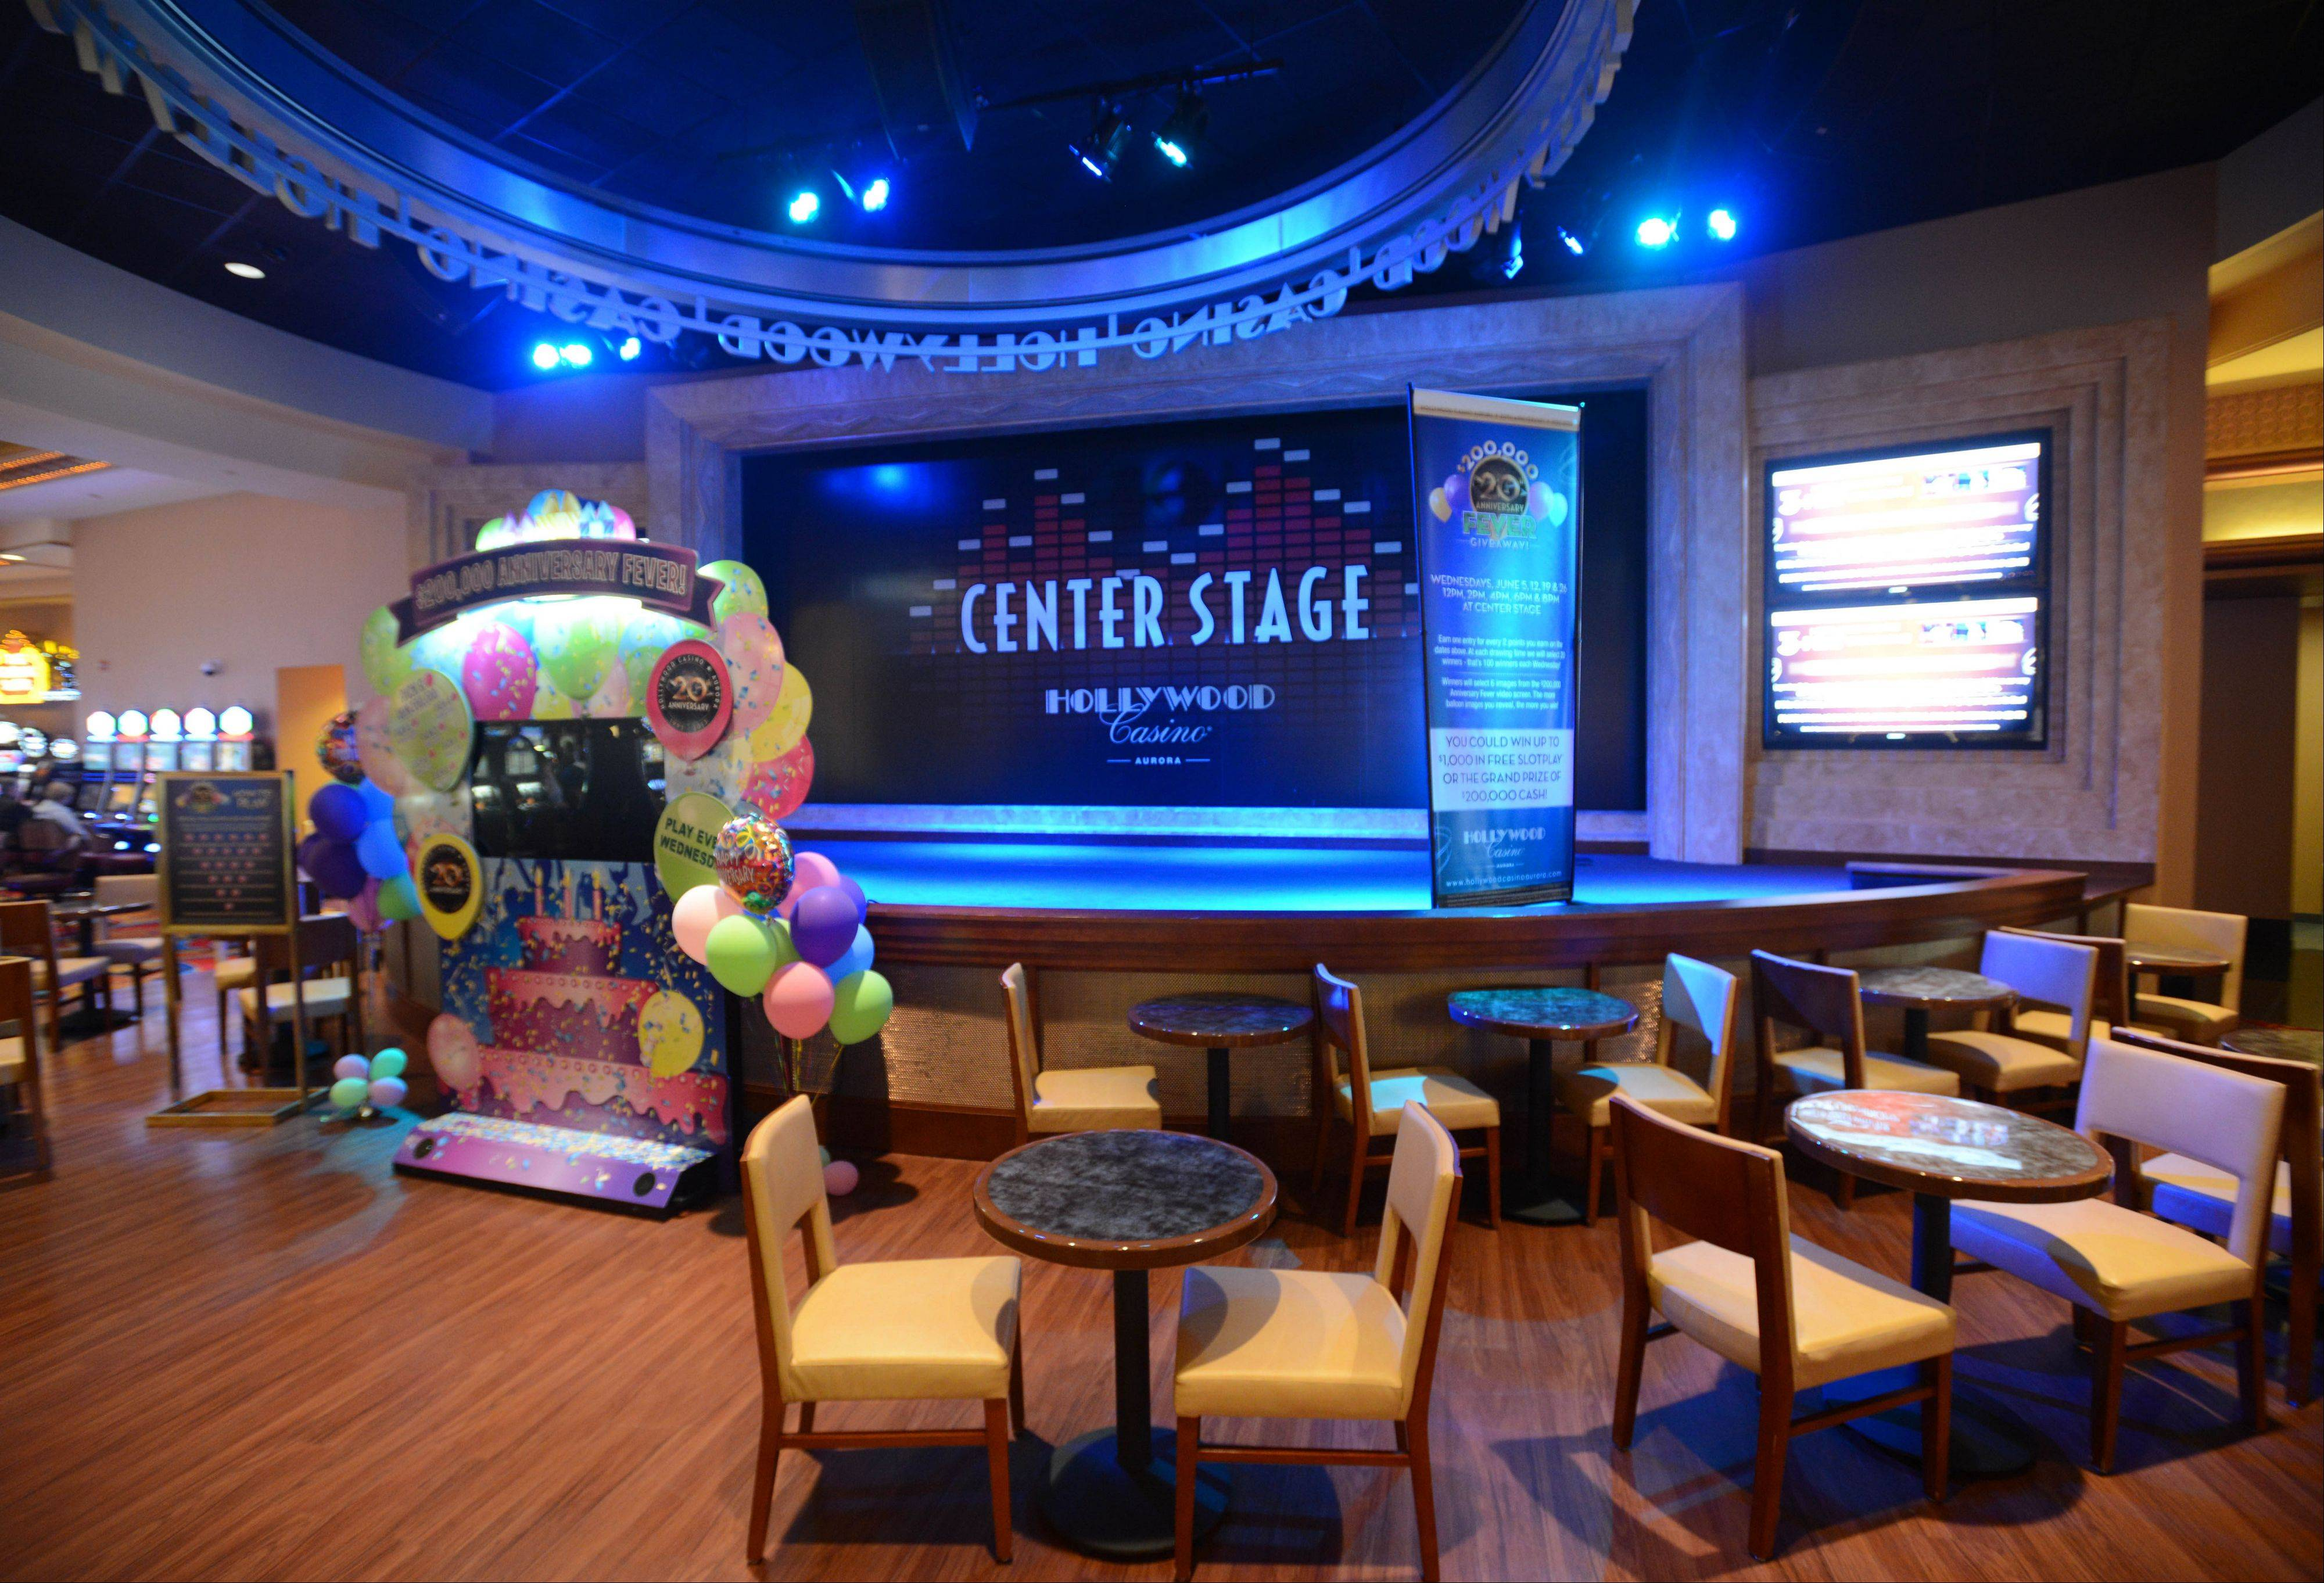 Center Stage at Hollywood Casino Aurora opened in July 2012, and General Manager Himbert Sinopoli said the performance spot adds bands and entertainment to the experience the casino offers. Hollywood Casino is celebrating its 20th anniversary this month after opening June 17, 1993.